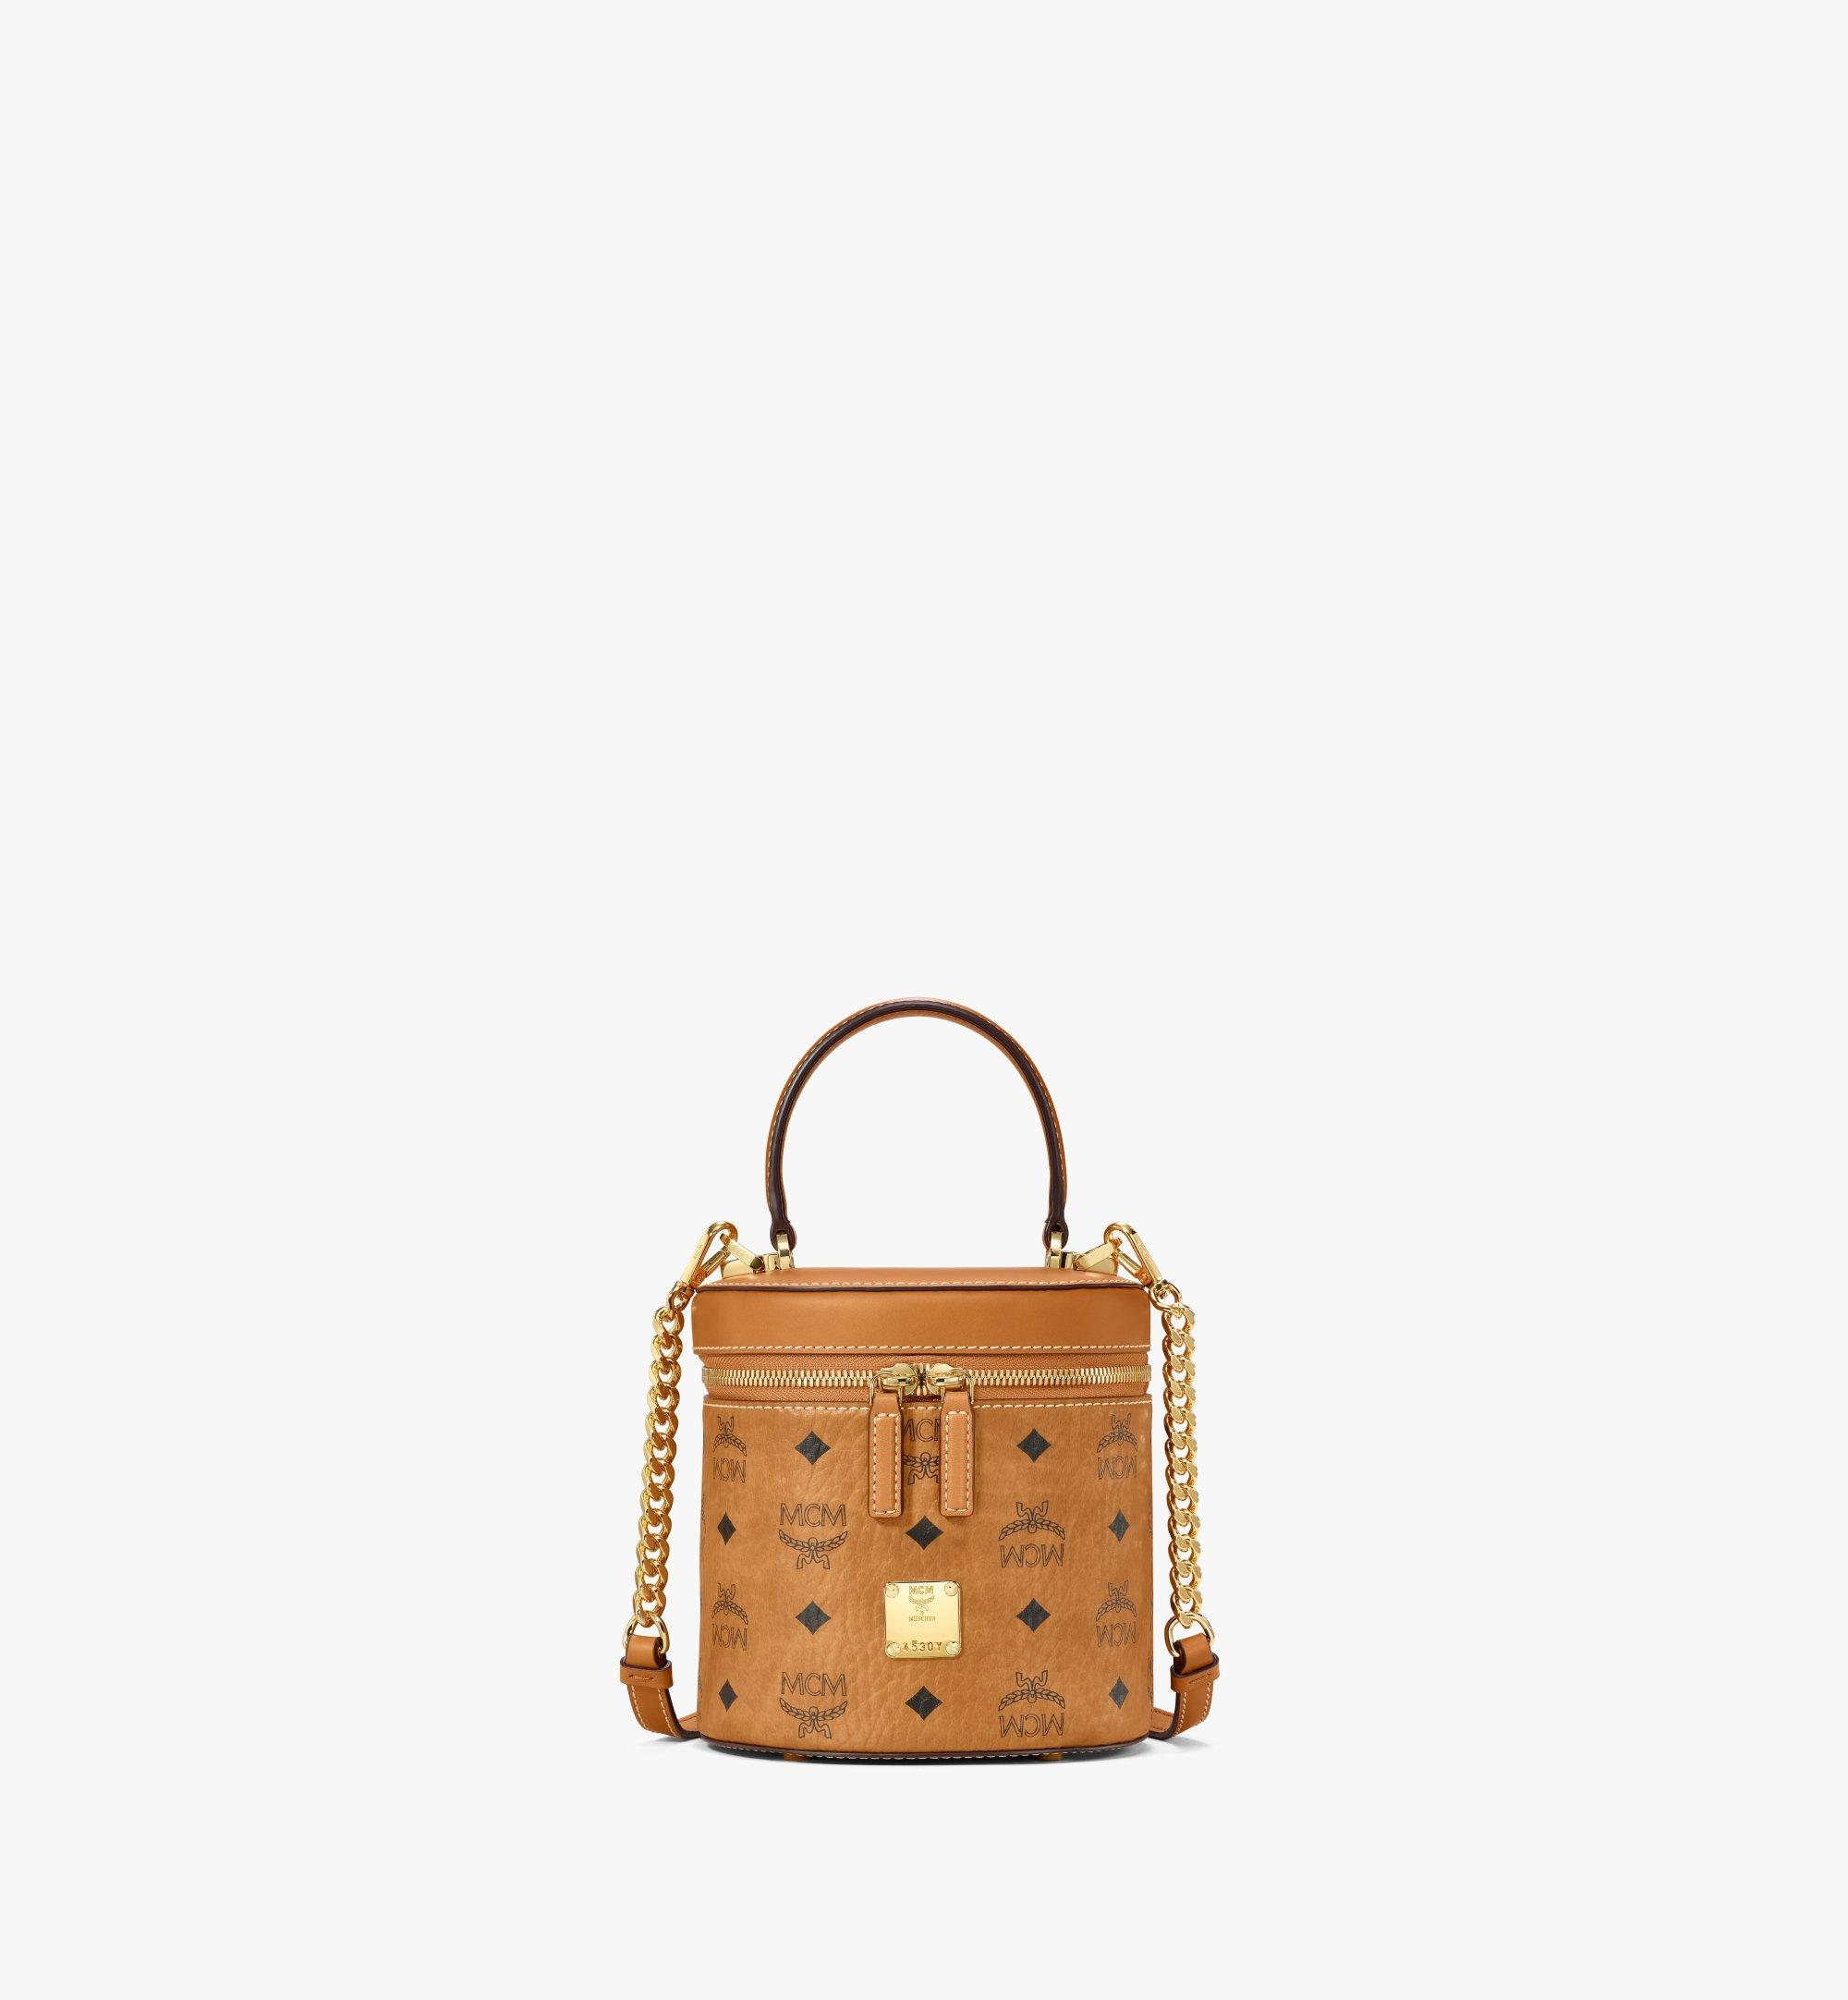 MCM Sac à bandoulière cylindrique en Visetos Cognac MWRAACG01CO001 Plus de photos 1